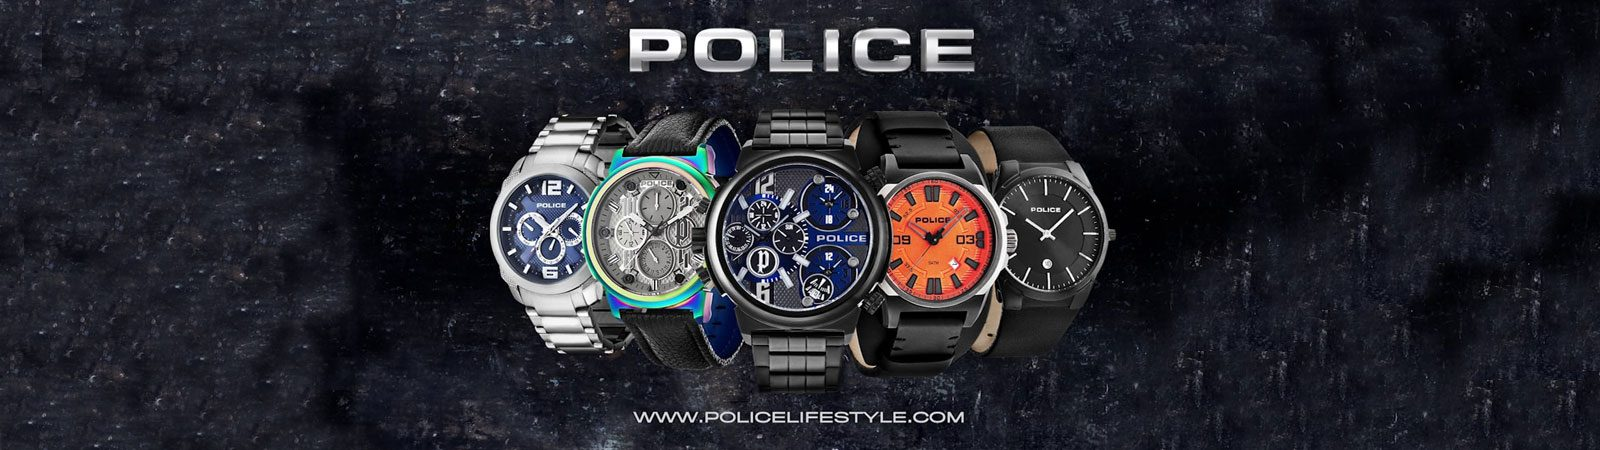 Police Watches Banner 1800x450